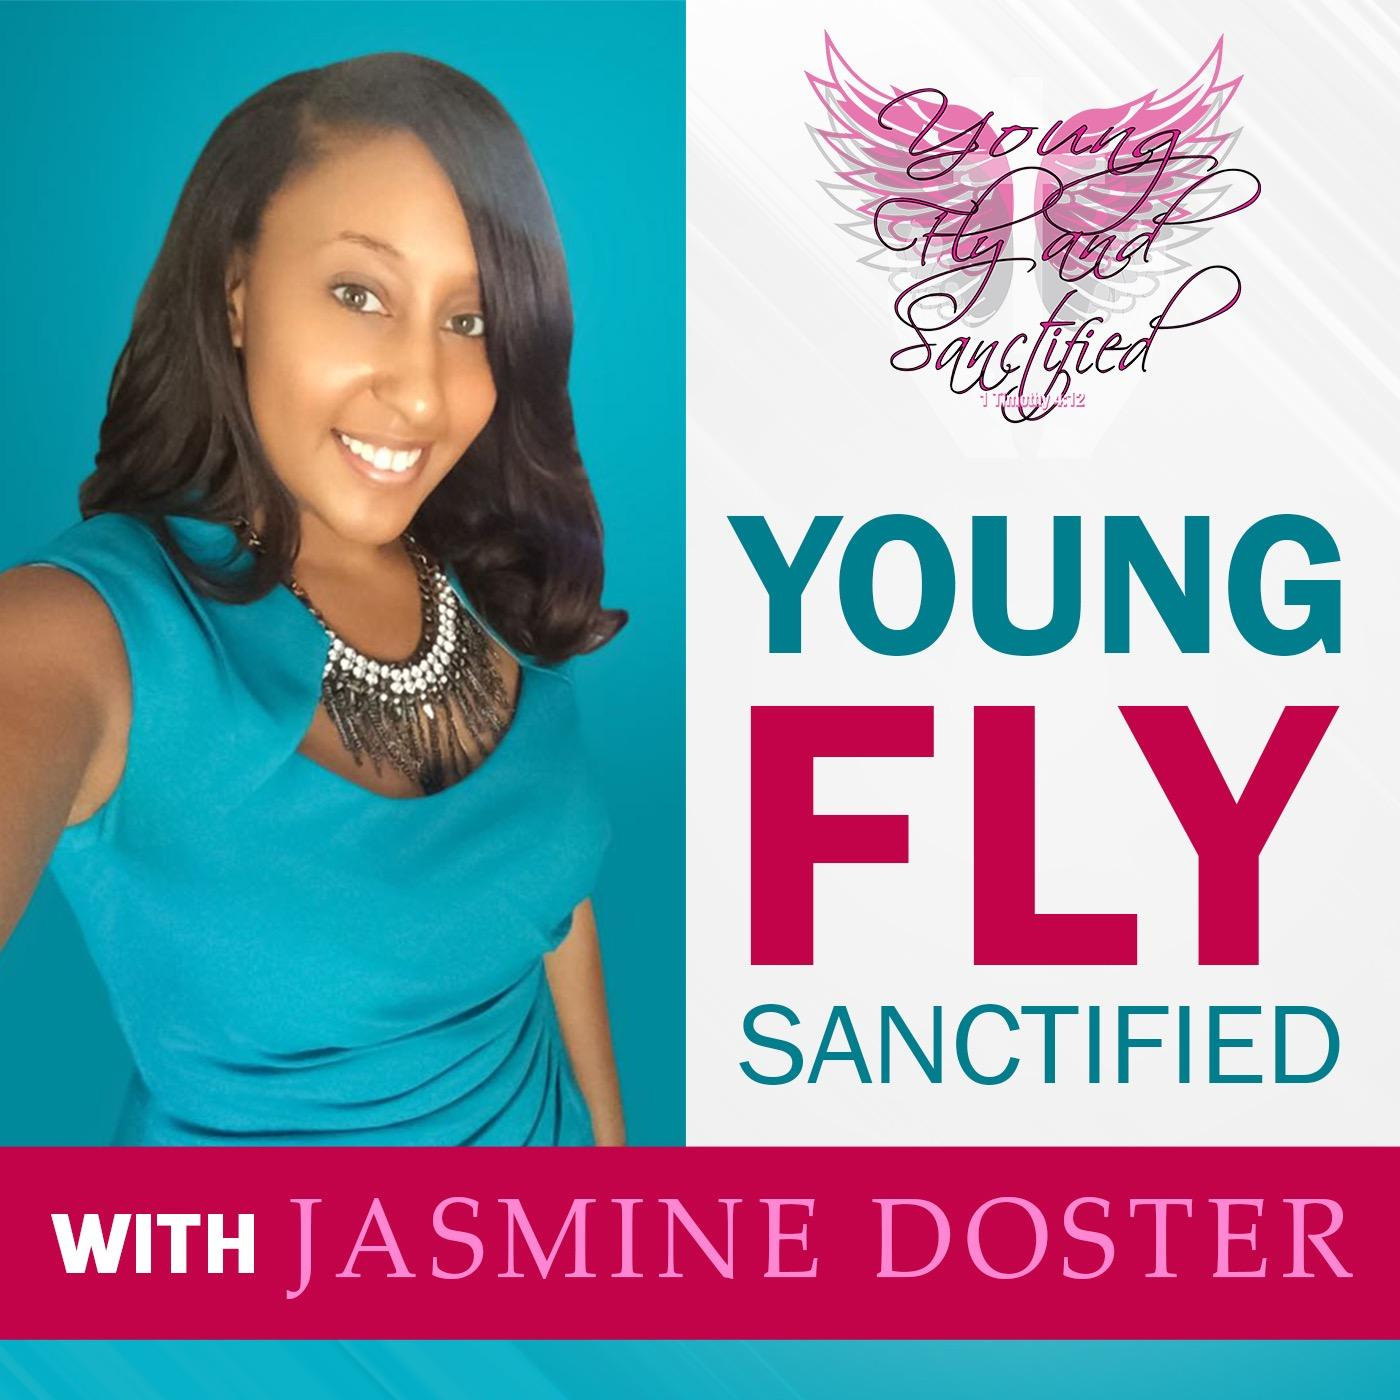 Young Fly Sanctified with Jasmine Doster